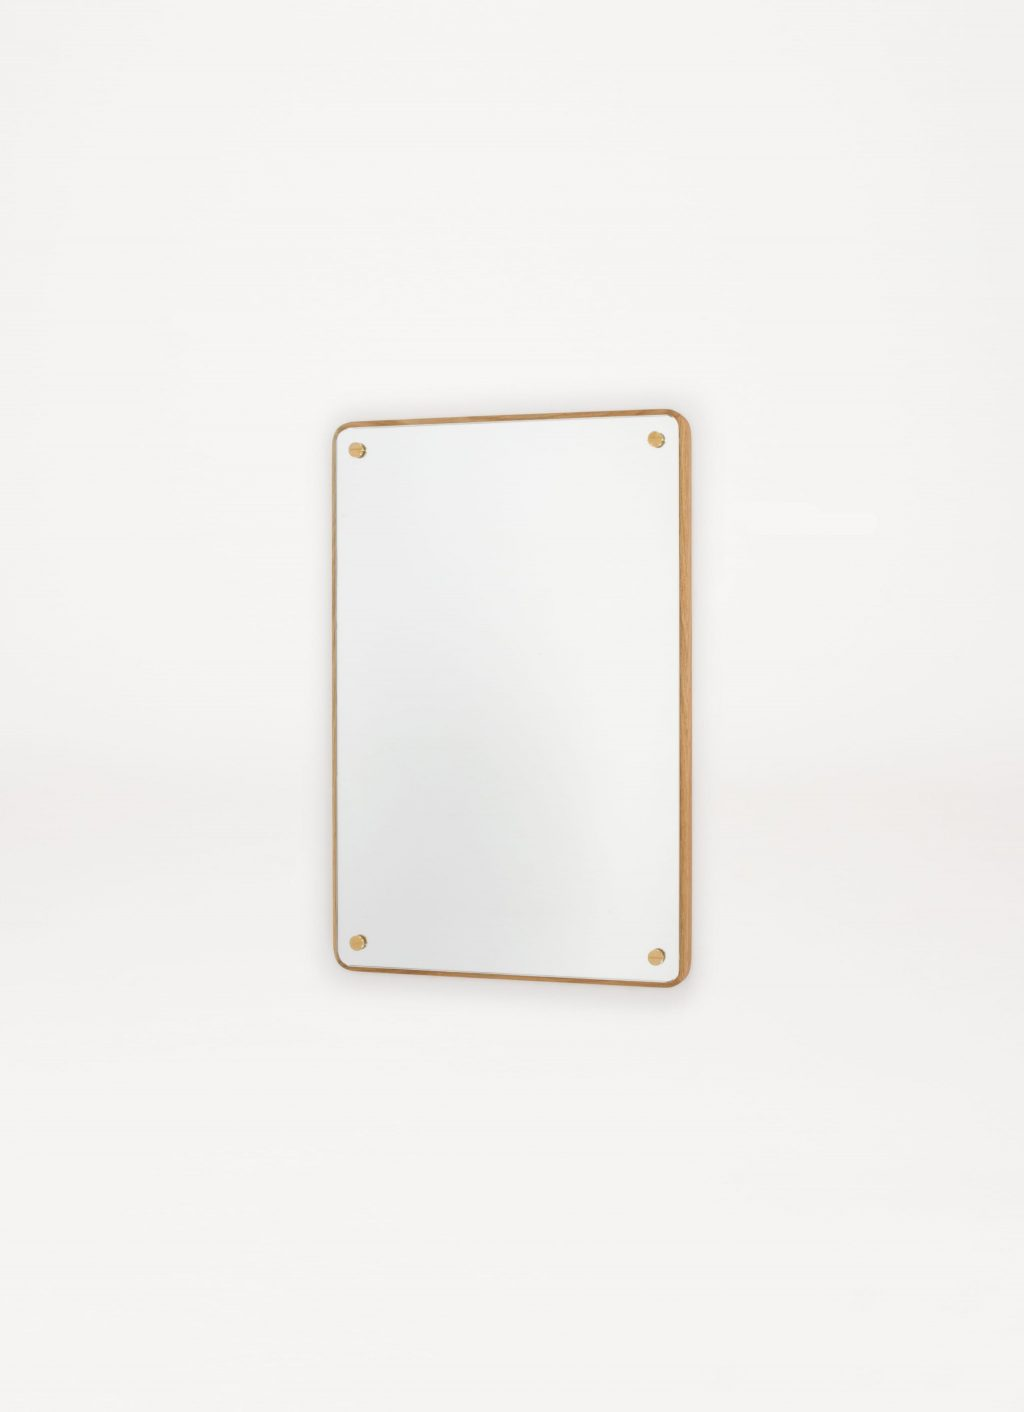 Frama - RM 1 - Rectangular Mirror - Small